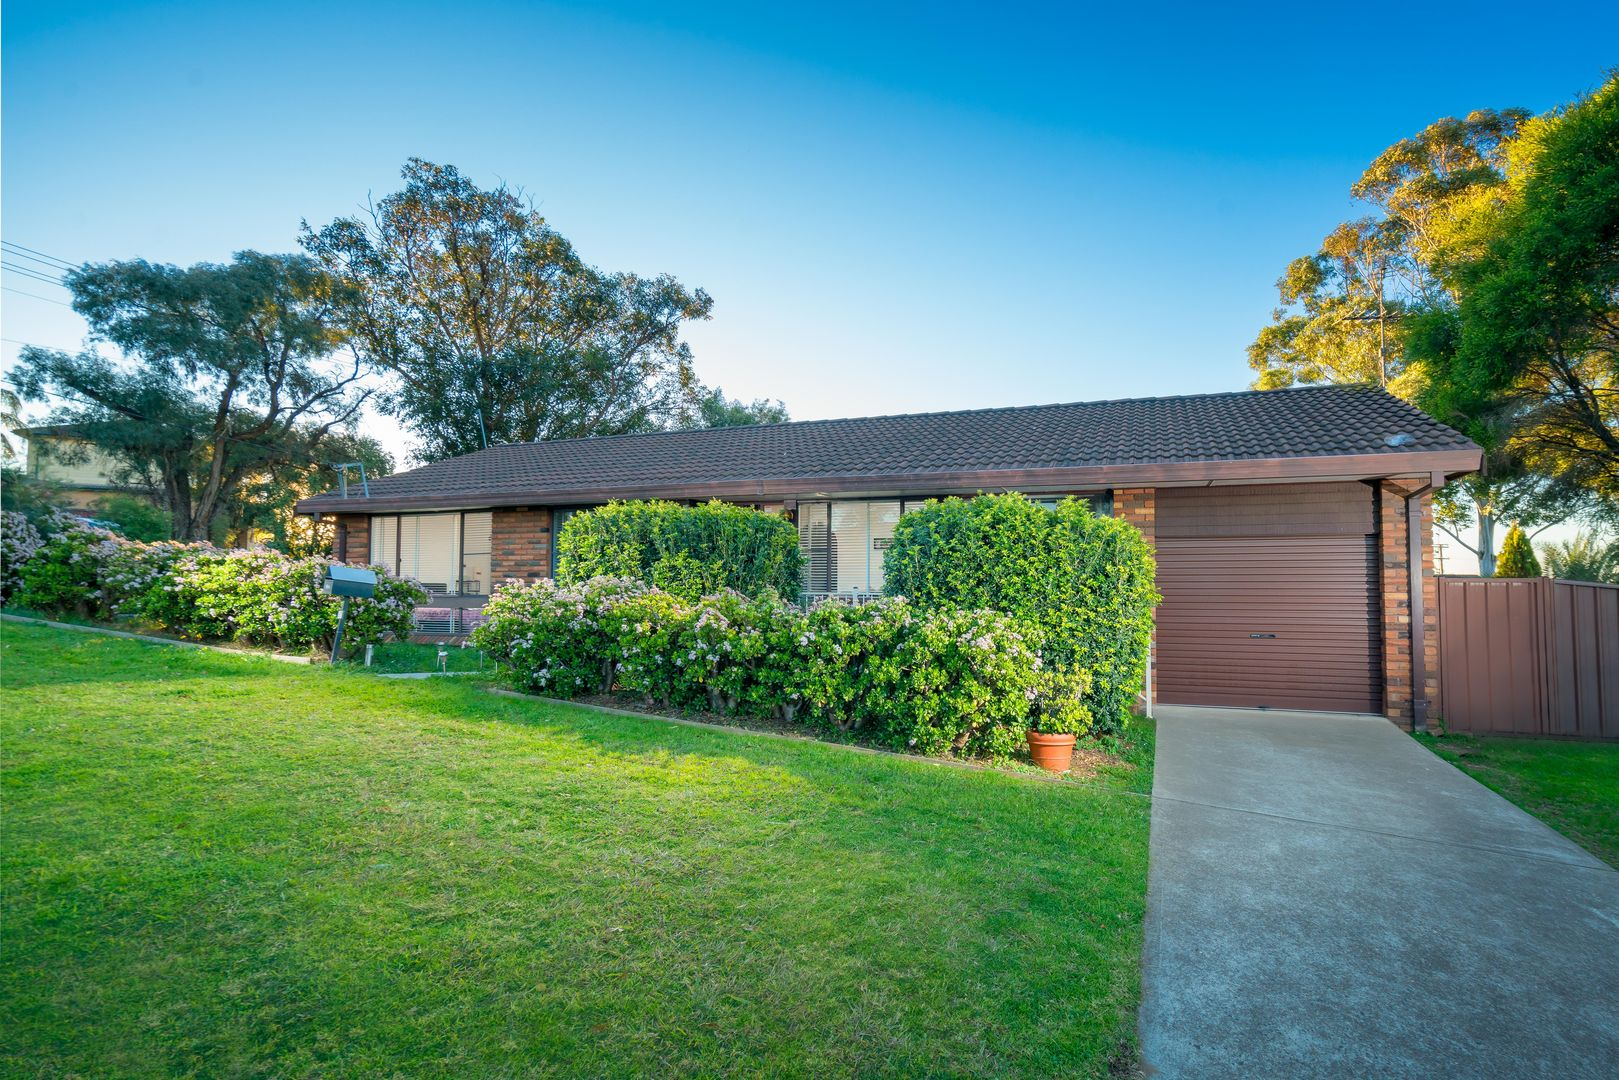 57 Doncaster Ave, Narellan NSW 2567, Image 0